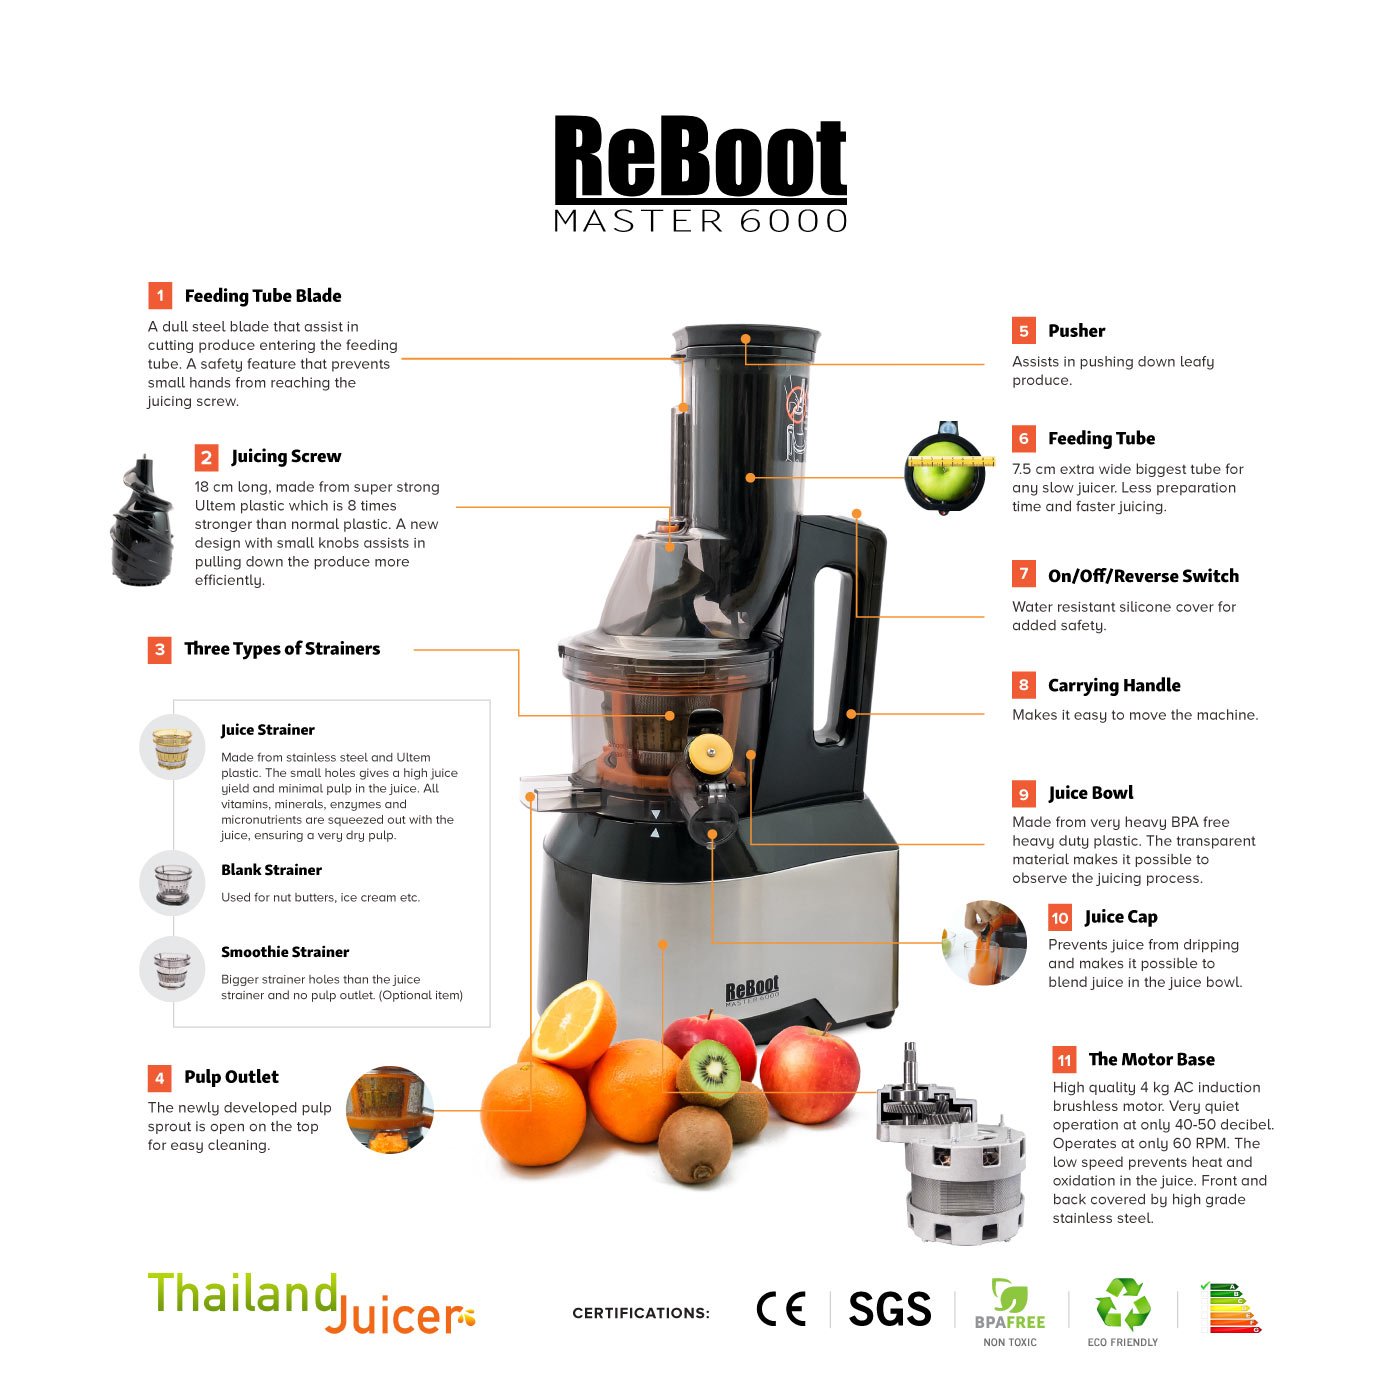 Reboot Master 6000 slow juicer diagram explaining parts